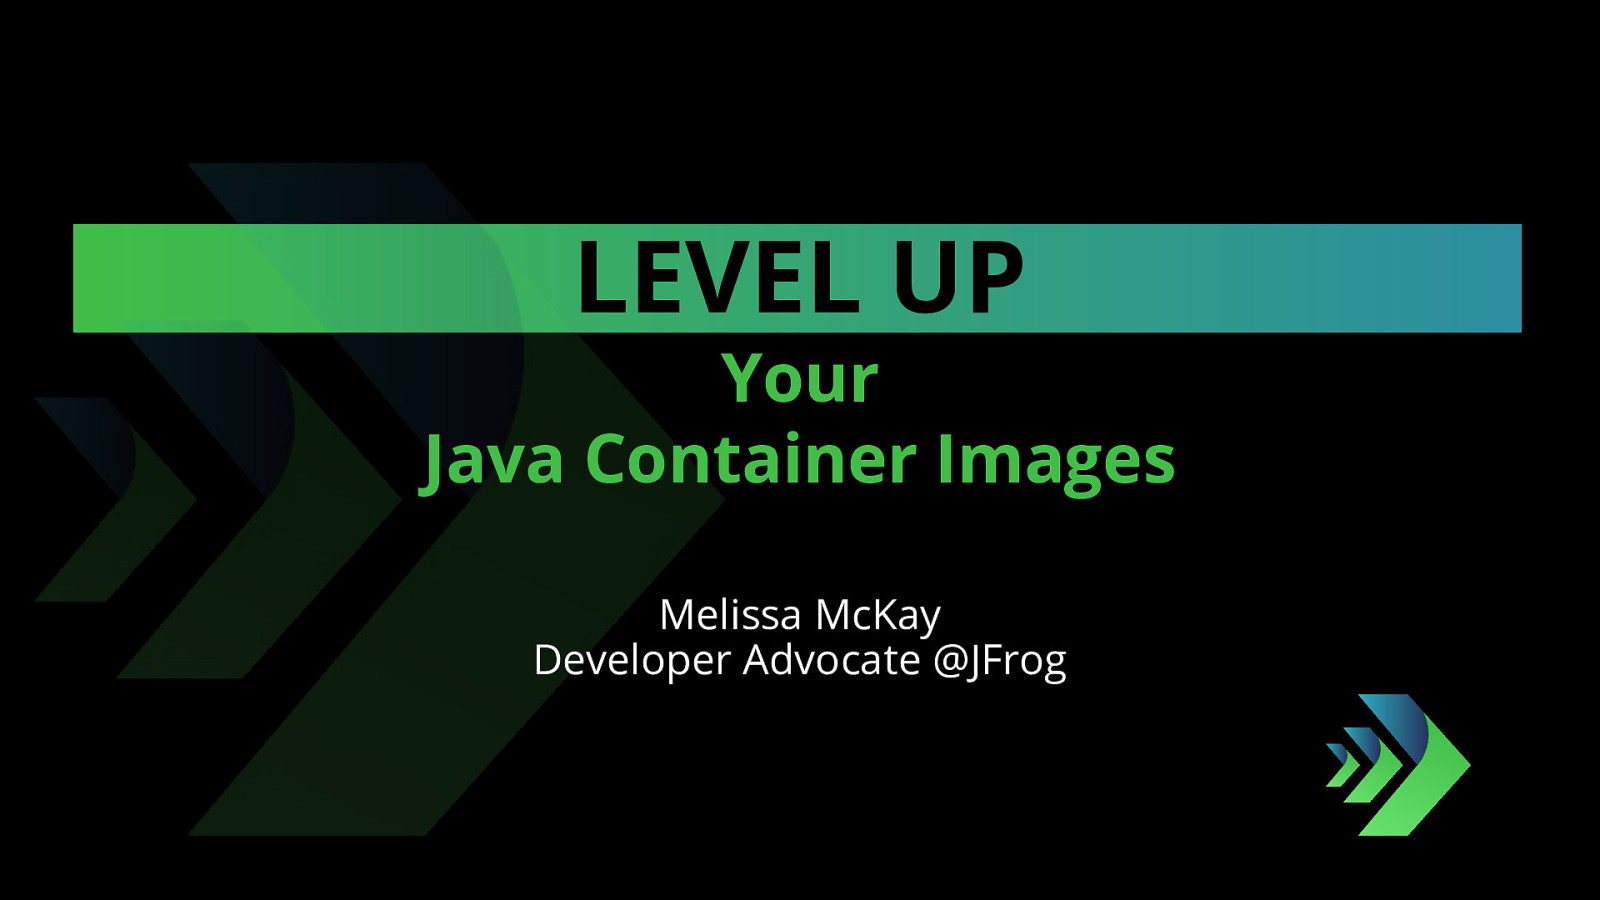 Level Up Your Java Containers by Melissa McKay